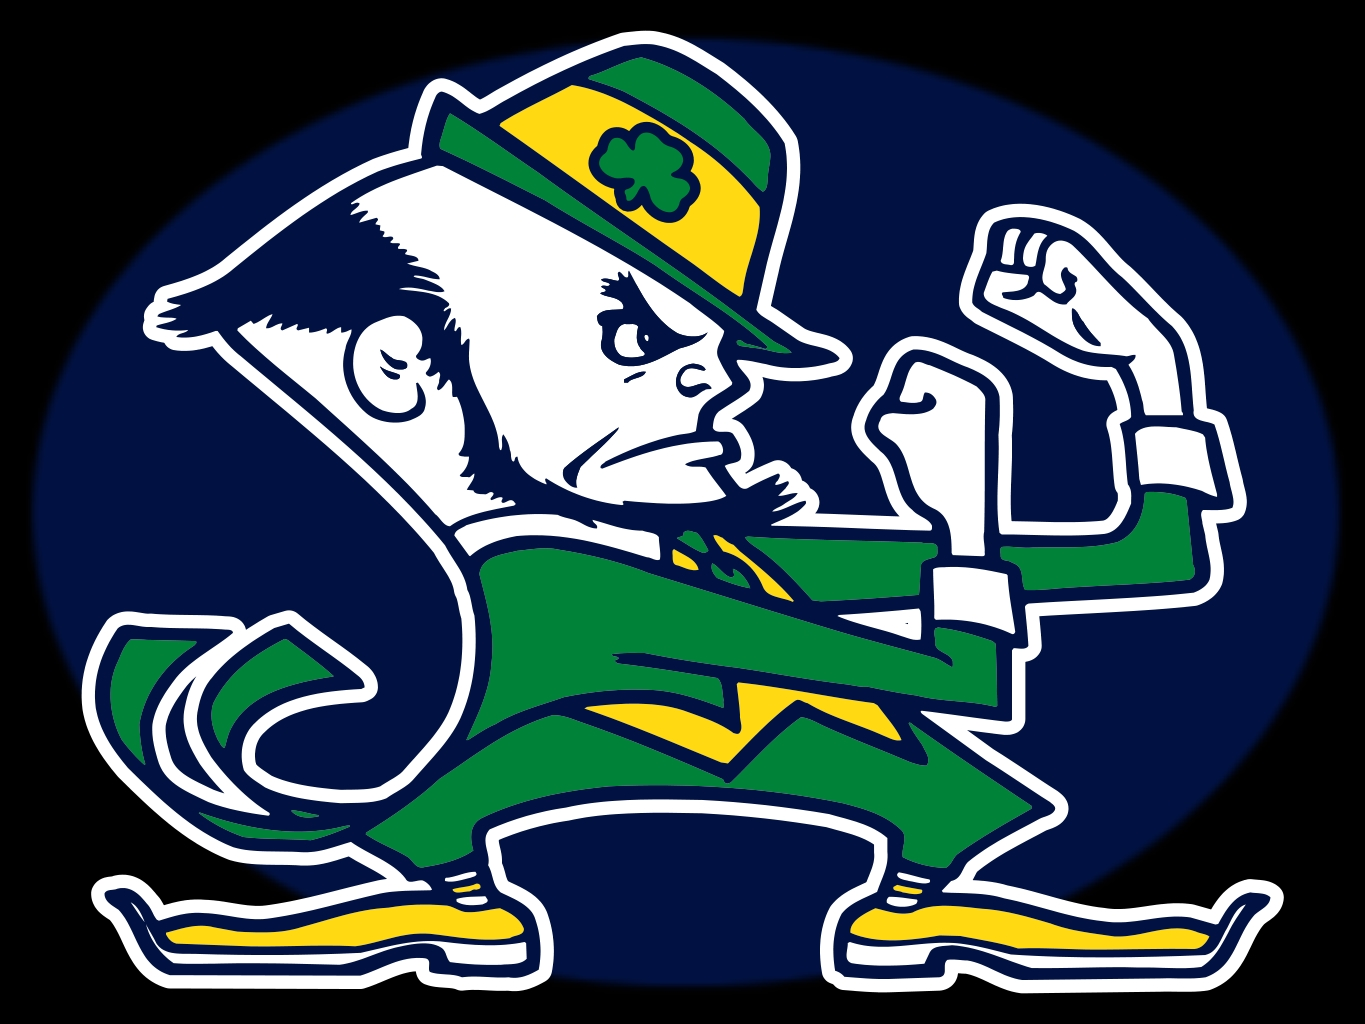 Notre Dame Fighting Irish Tickets